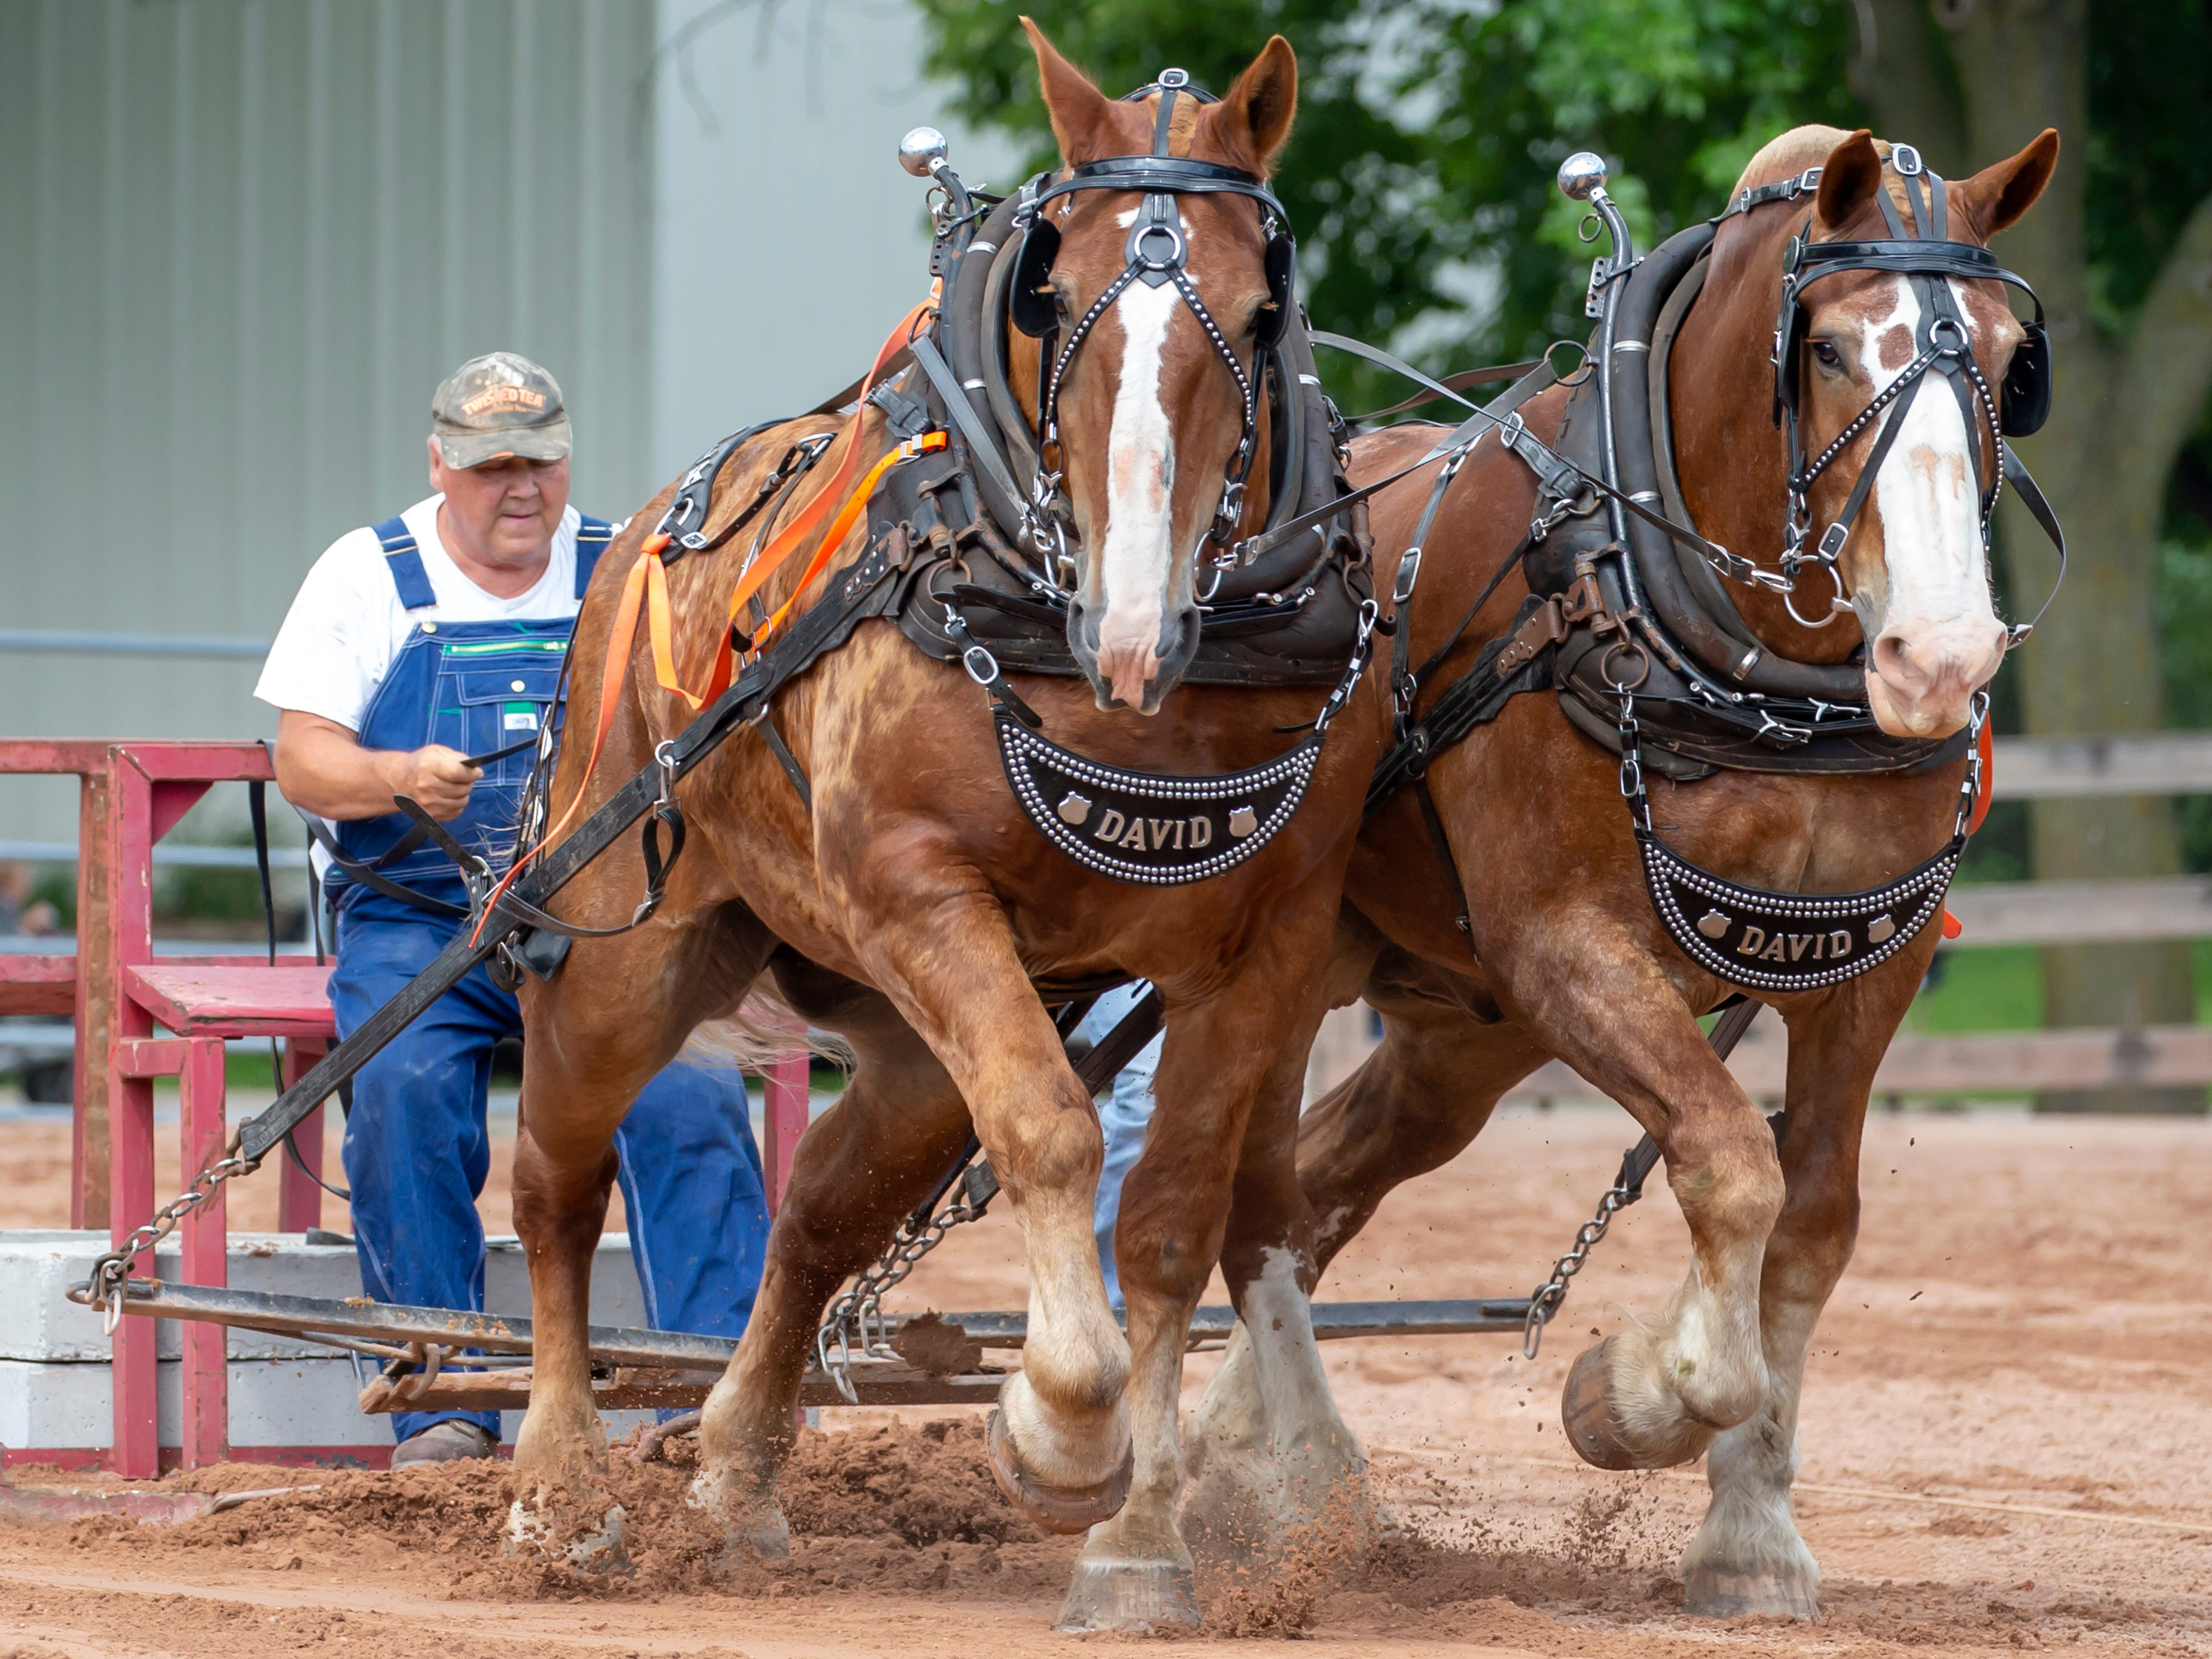 A team of work horses compete in the Clair Coats Memorial Horse Pull during the Winnebago County Fair on Friday, Aug. 3, 2018.